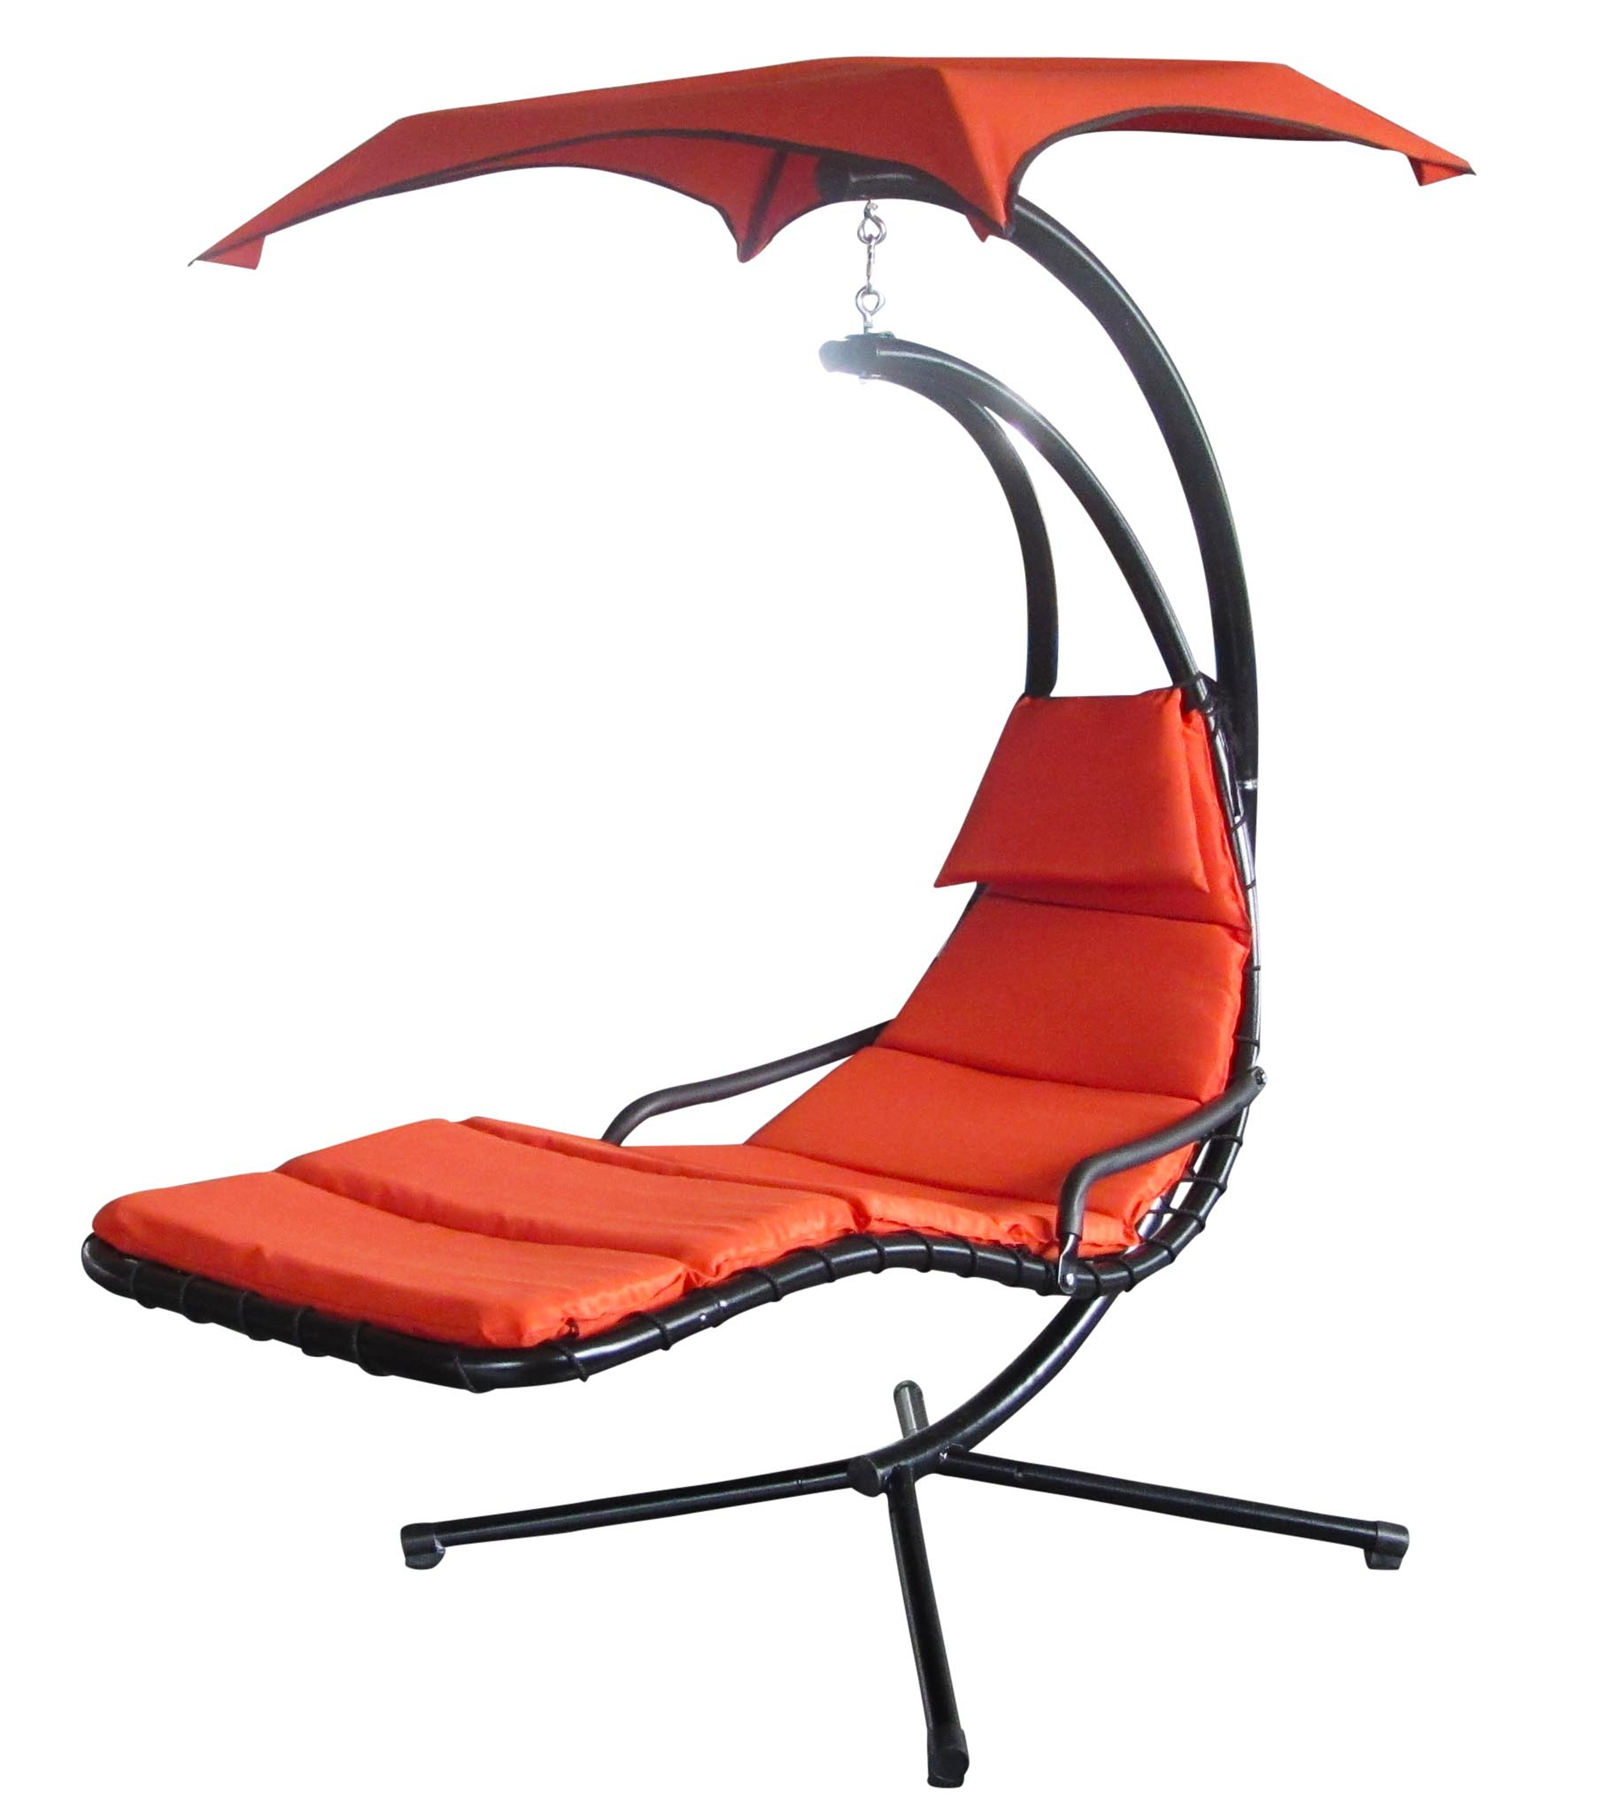 garten h ngematte helikopter h ngender stuhl sonnen liege orange foxhunter ebay. Black Bedroom Furniture Sets. Home Design Ideas